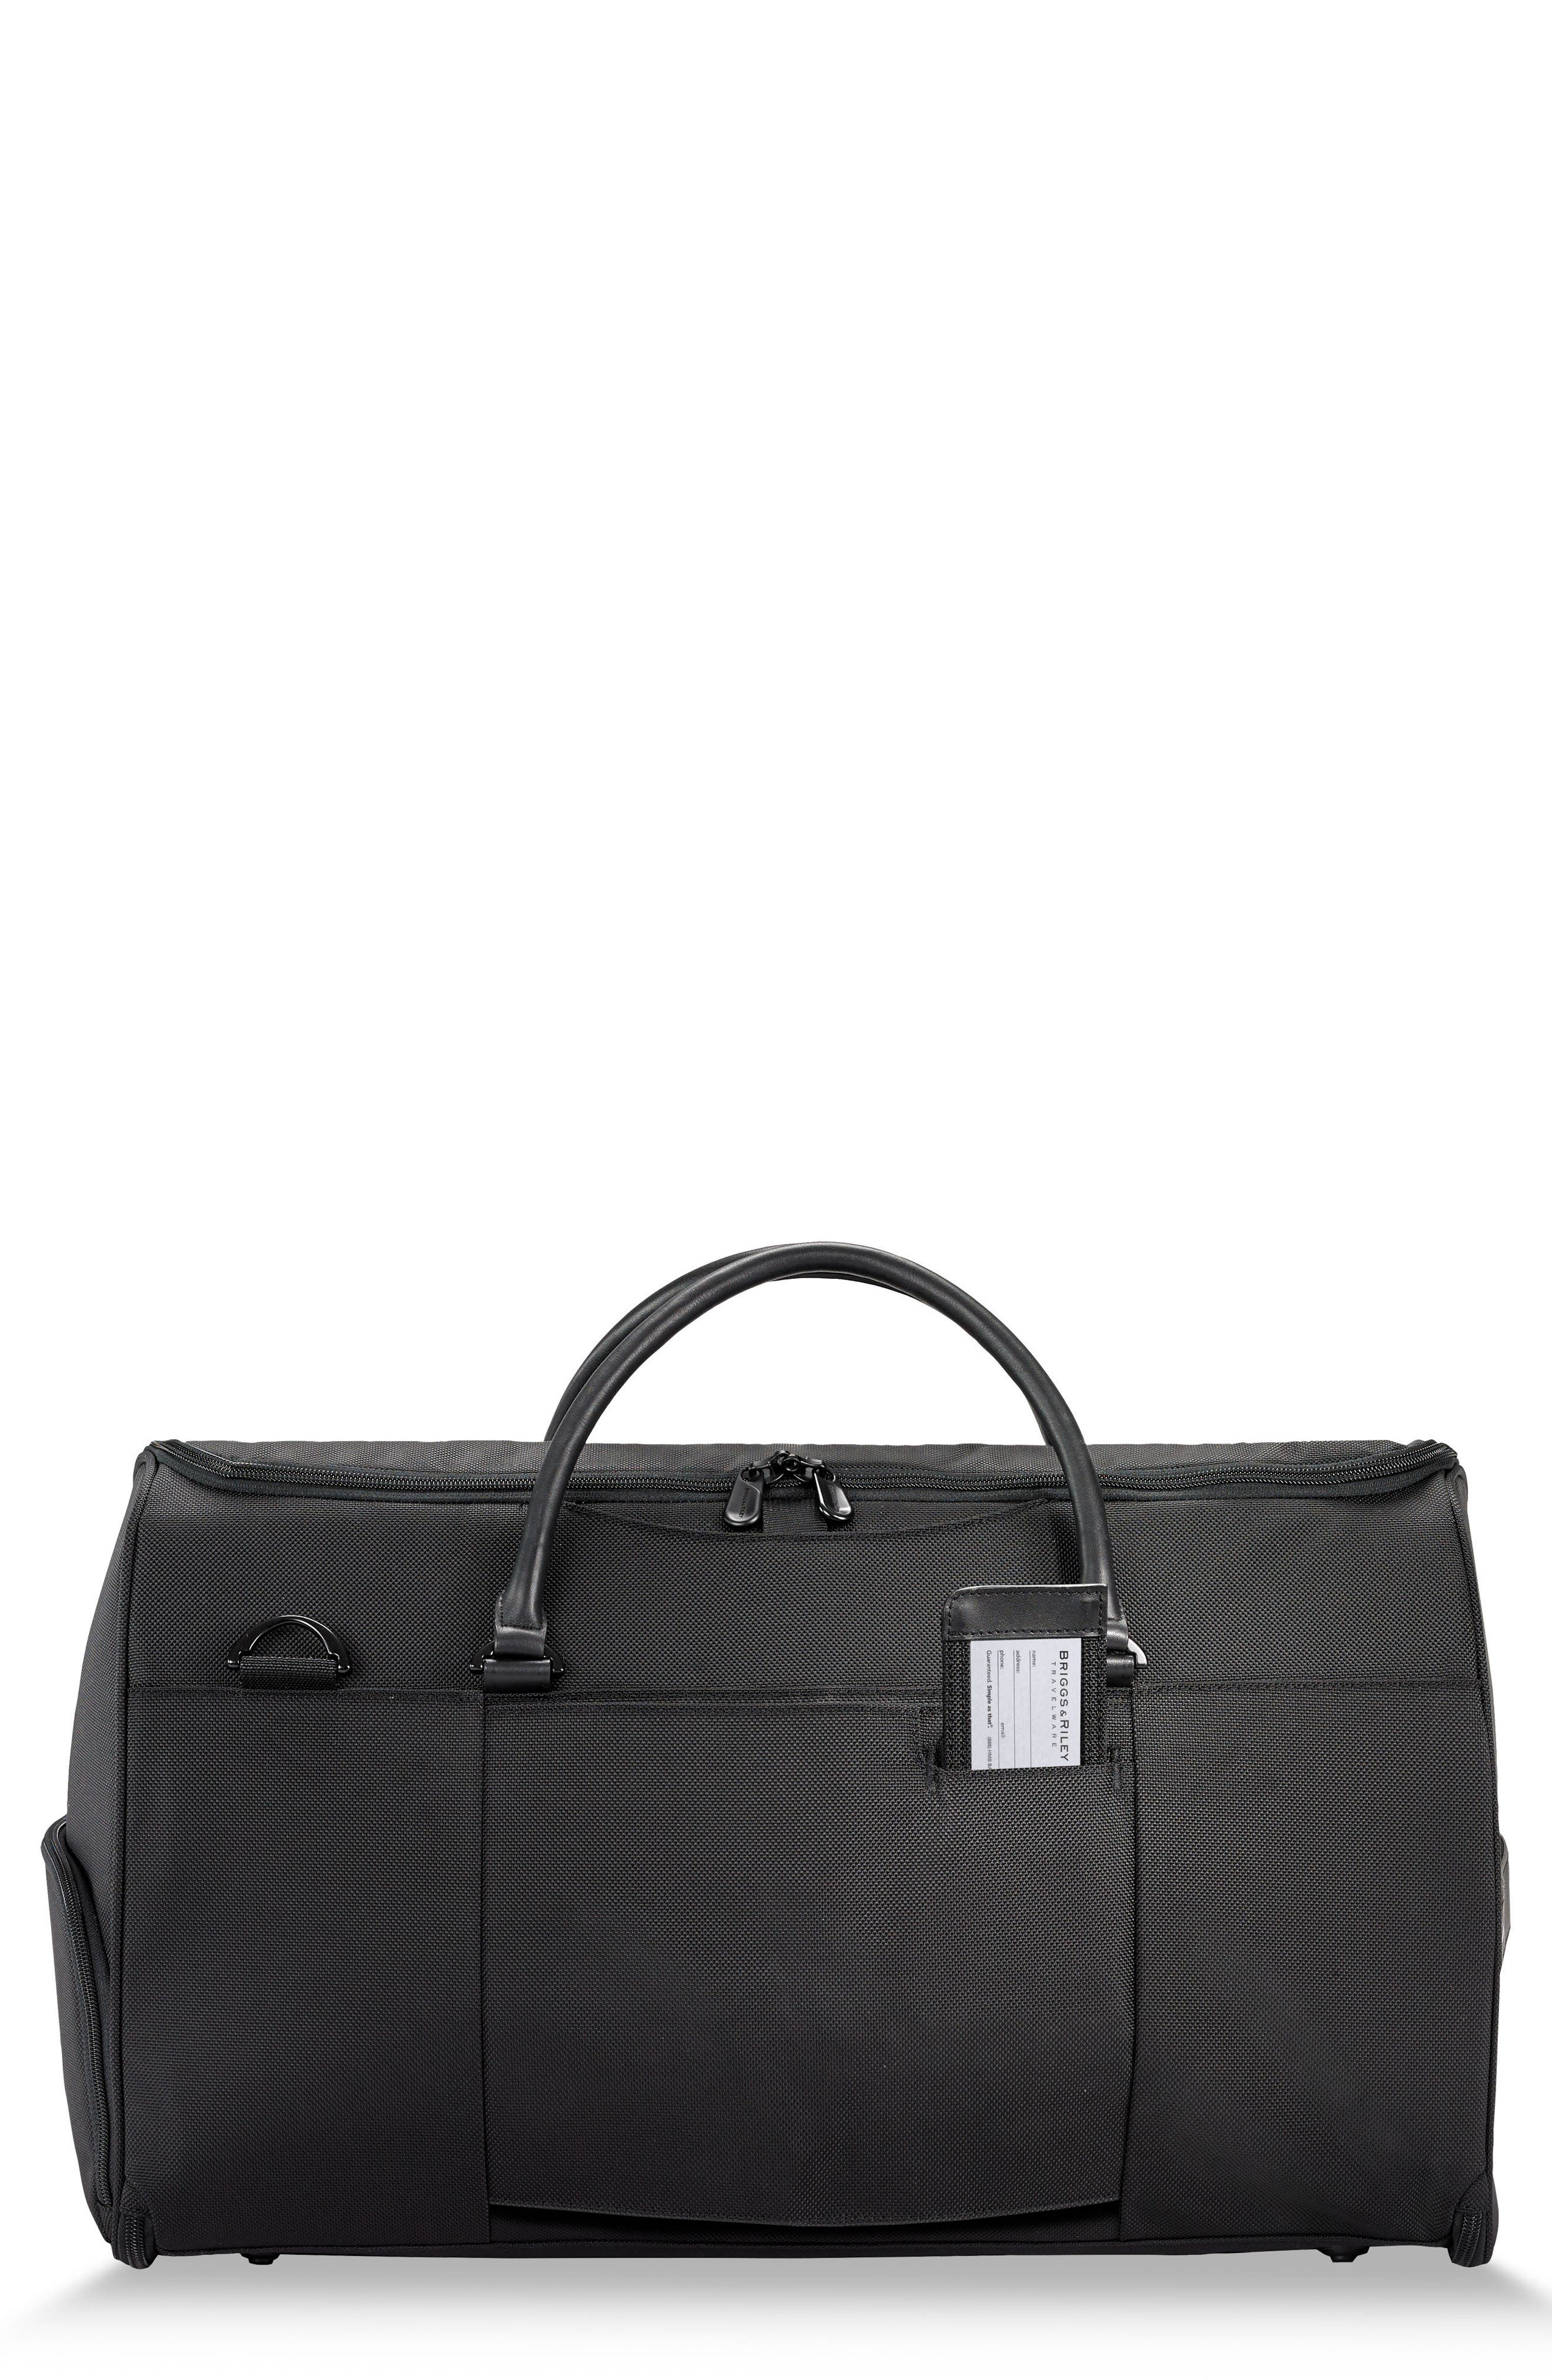 BRIGGS & RILEY, Baseline Suiter Duffle Bag, Main thumbnail 1, color, BLACK